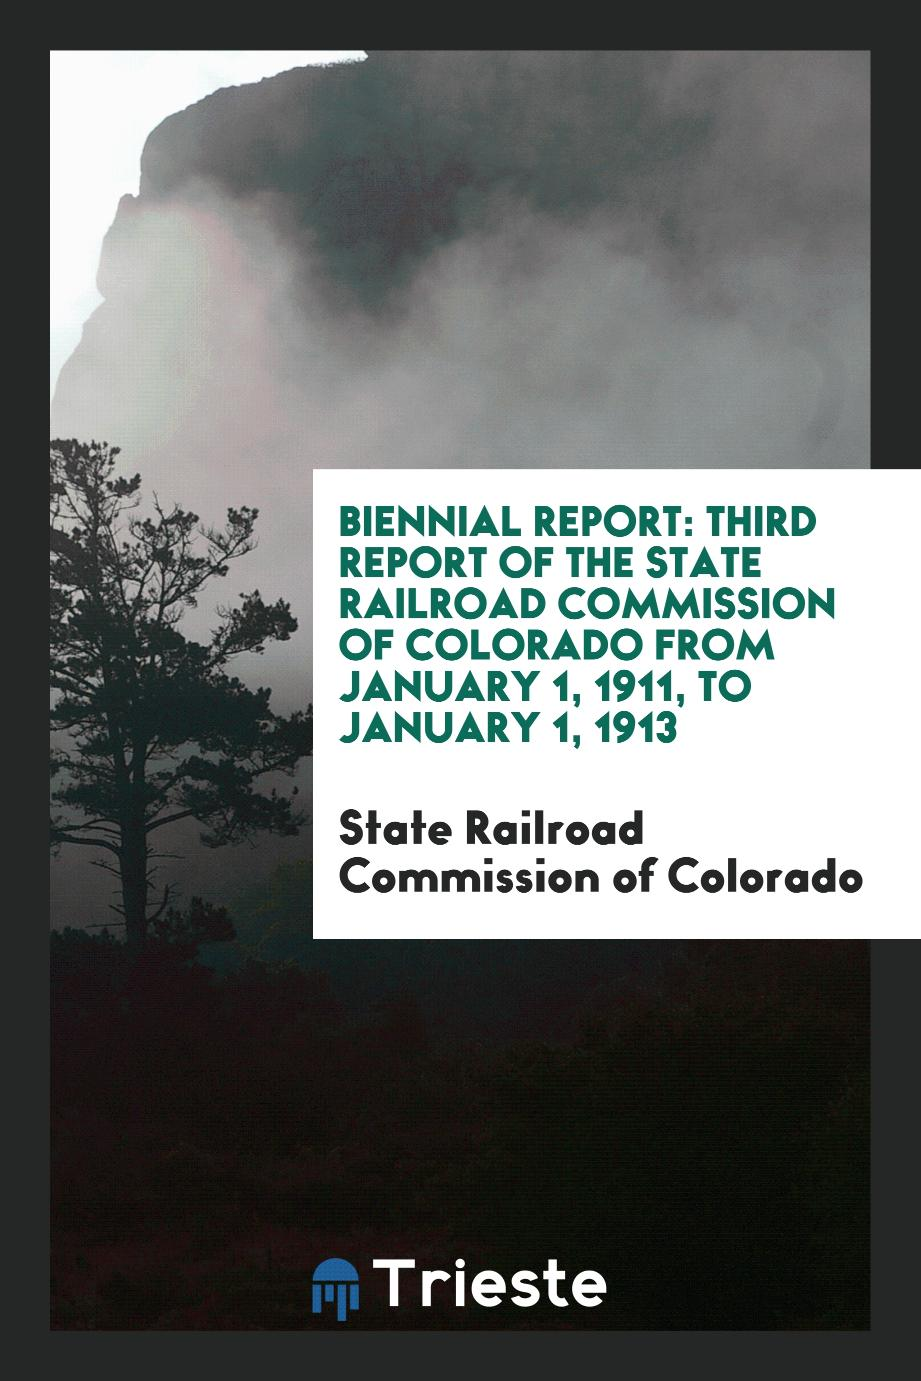 Biennial Report: Third Report of the State Railroad Commission of Colorado from January 1, 1911, to January 1, 1913